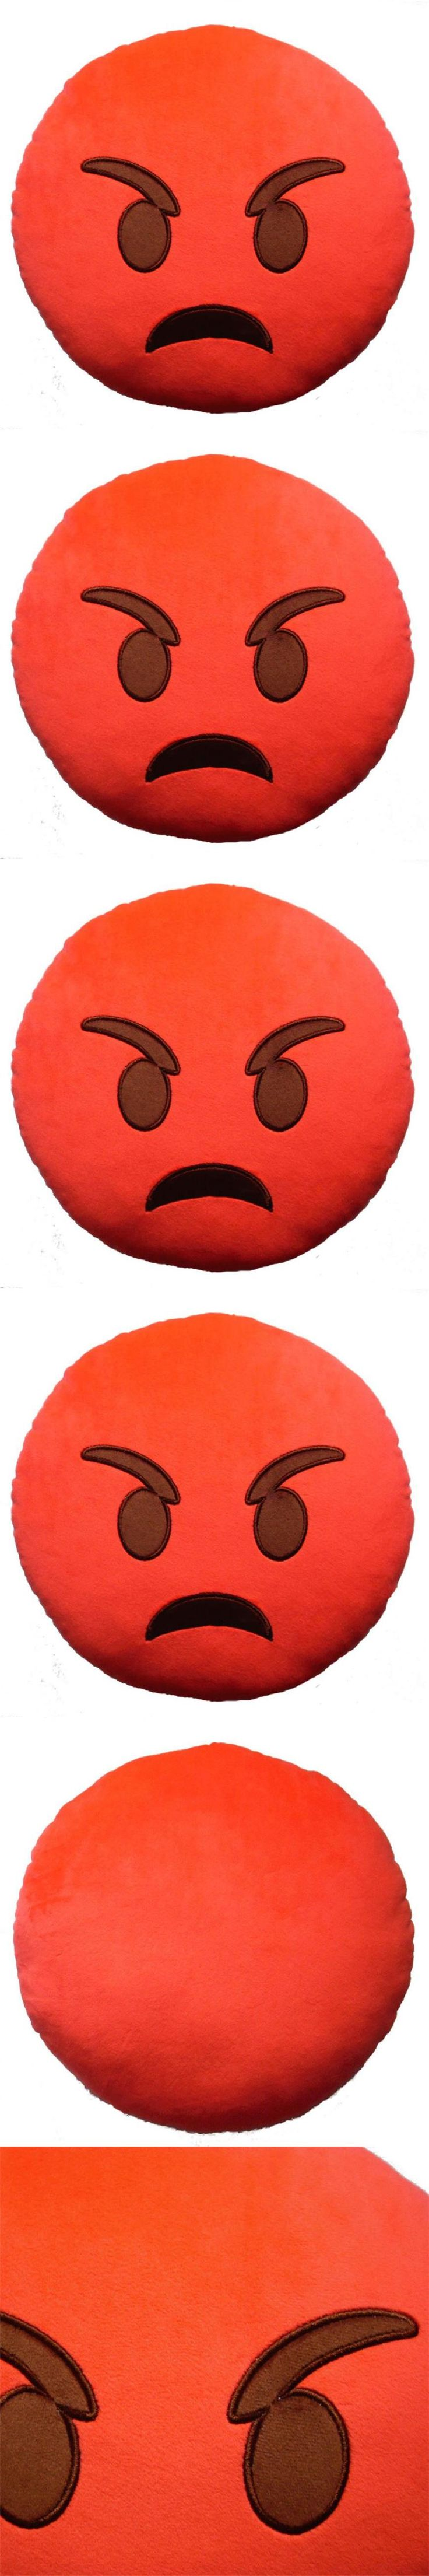 Home Decoration Red Angry Emoji Home Office Emoticon Emoji Cushion Decorative Throw Pillow Toy Gift cojines Better Life